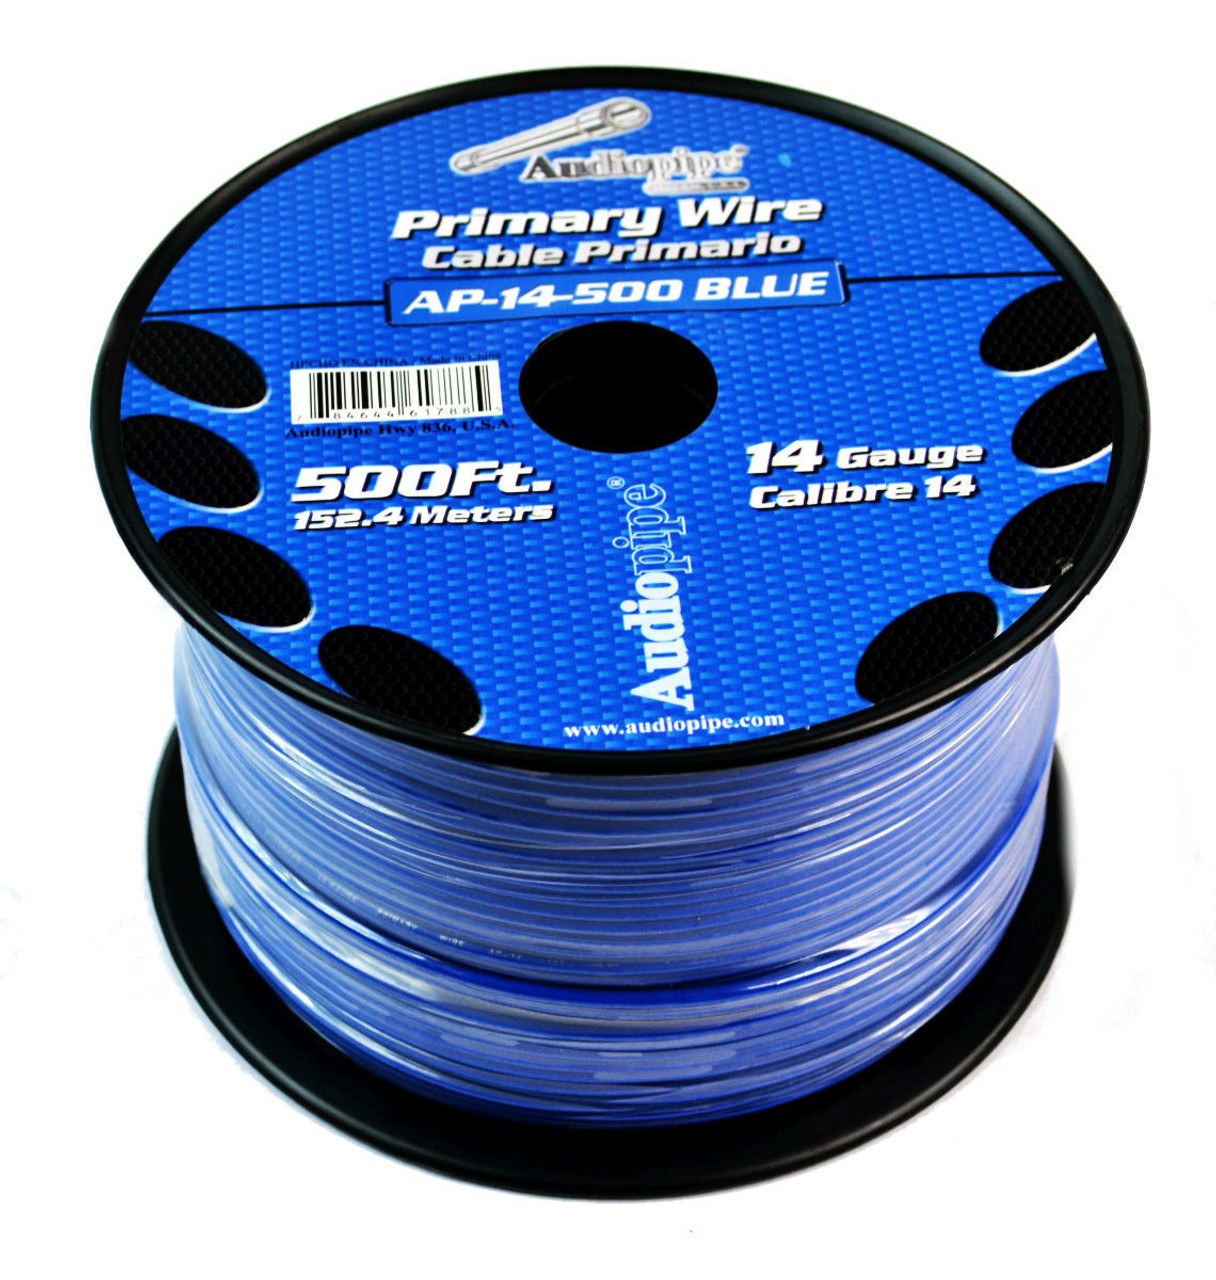 hight resolution of 14 ga 500 blue audiopipe car audio home primary remote wire